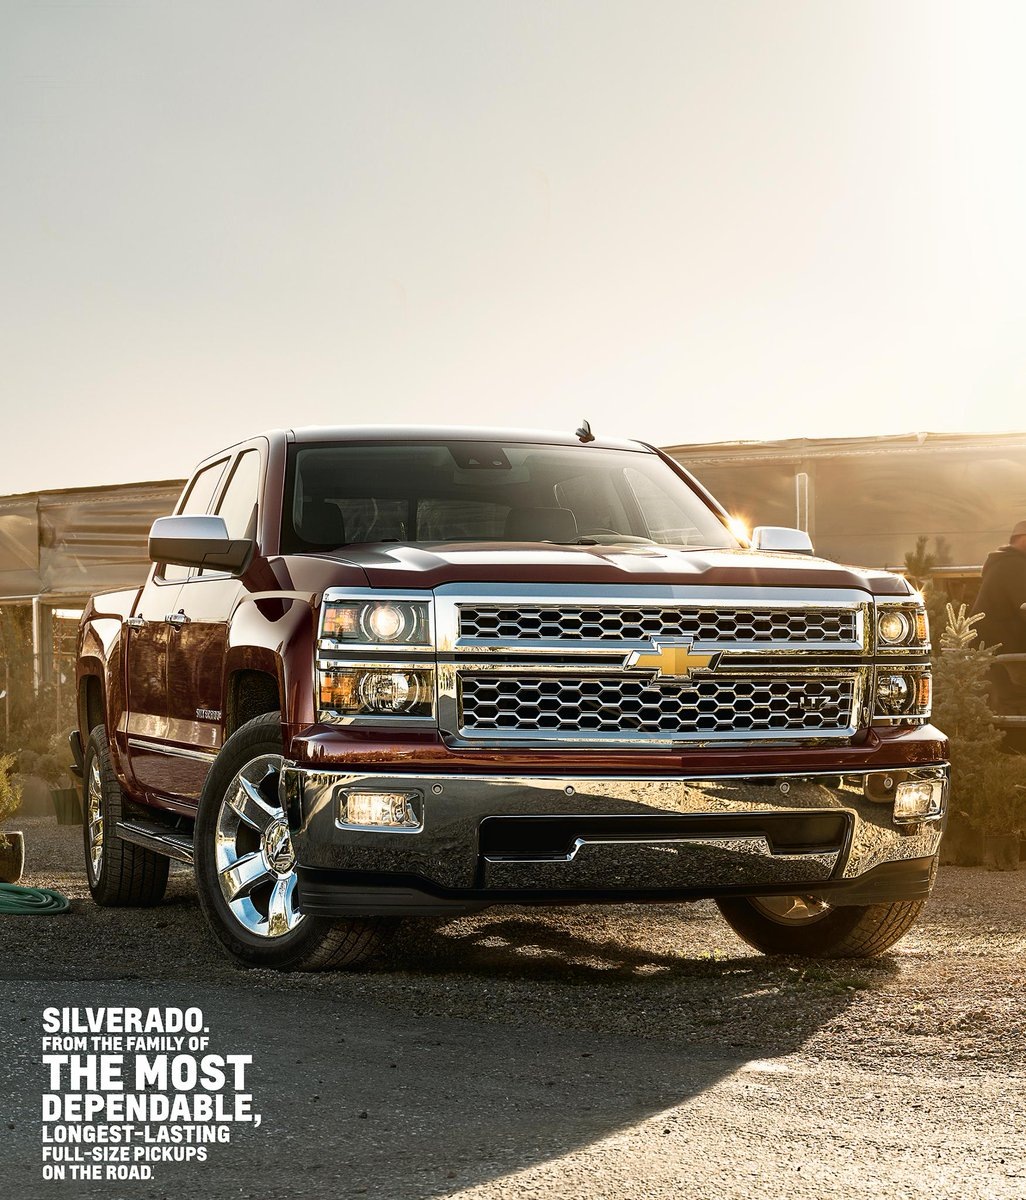 In it for the long haul: The 2015 #Silverado 1500 goes the distance. Day in, day out. http://t.co/ZEDme8Lhet http://t.co/jr9oYxkhB0